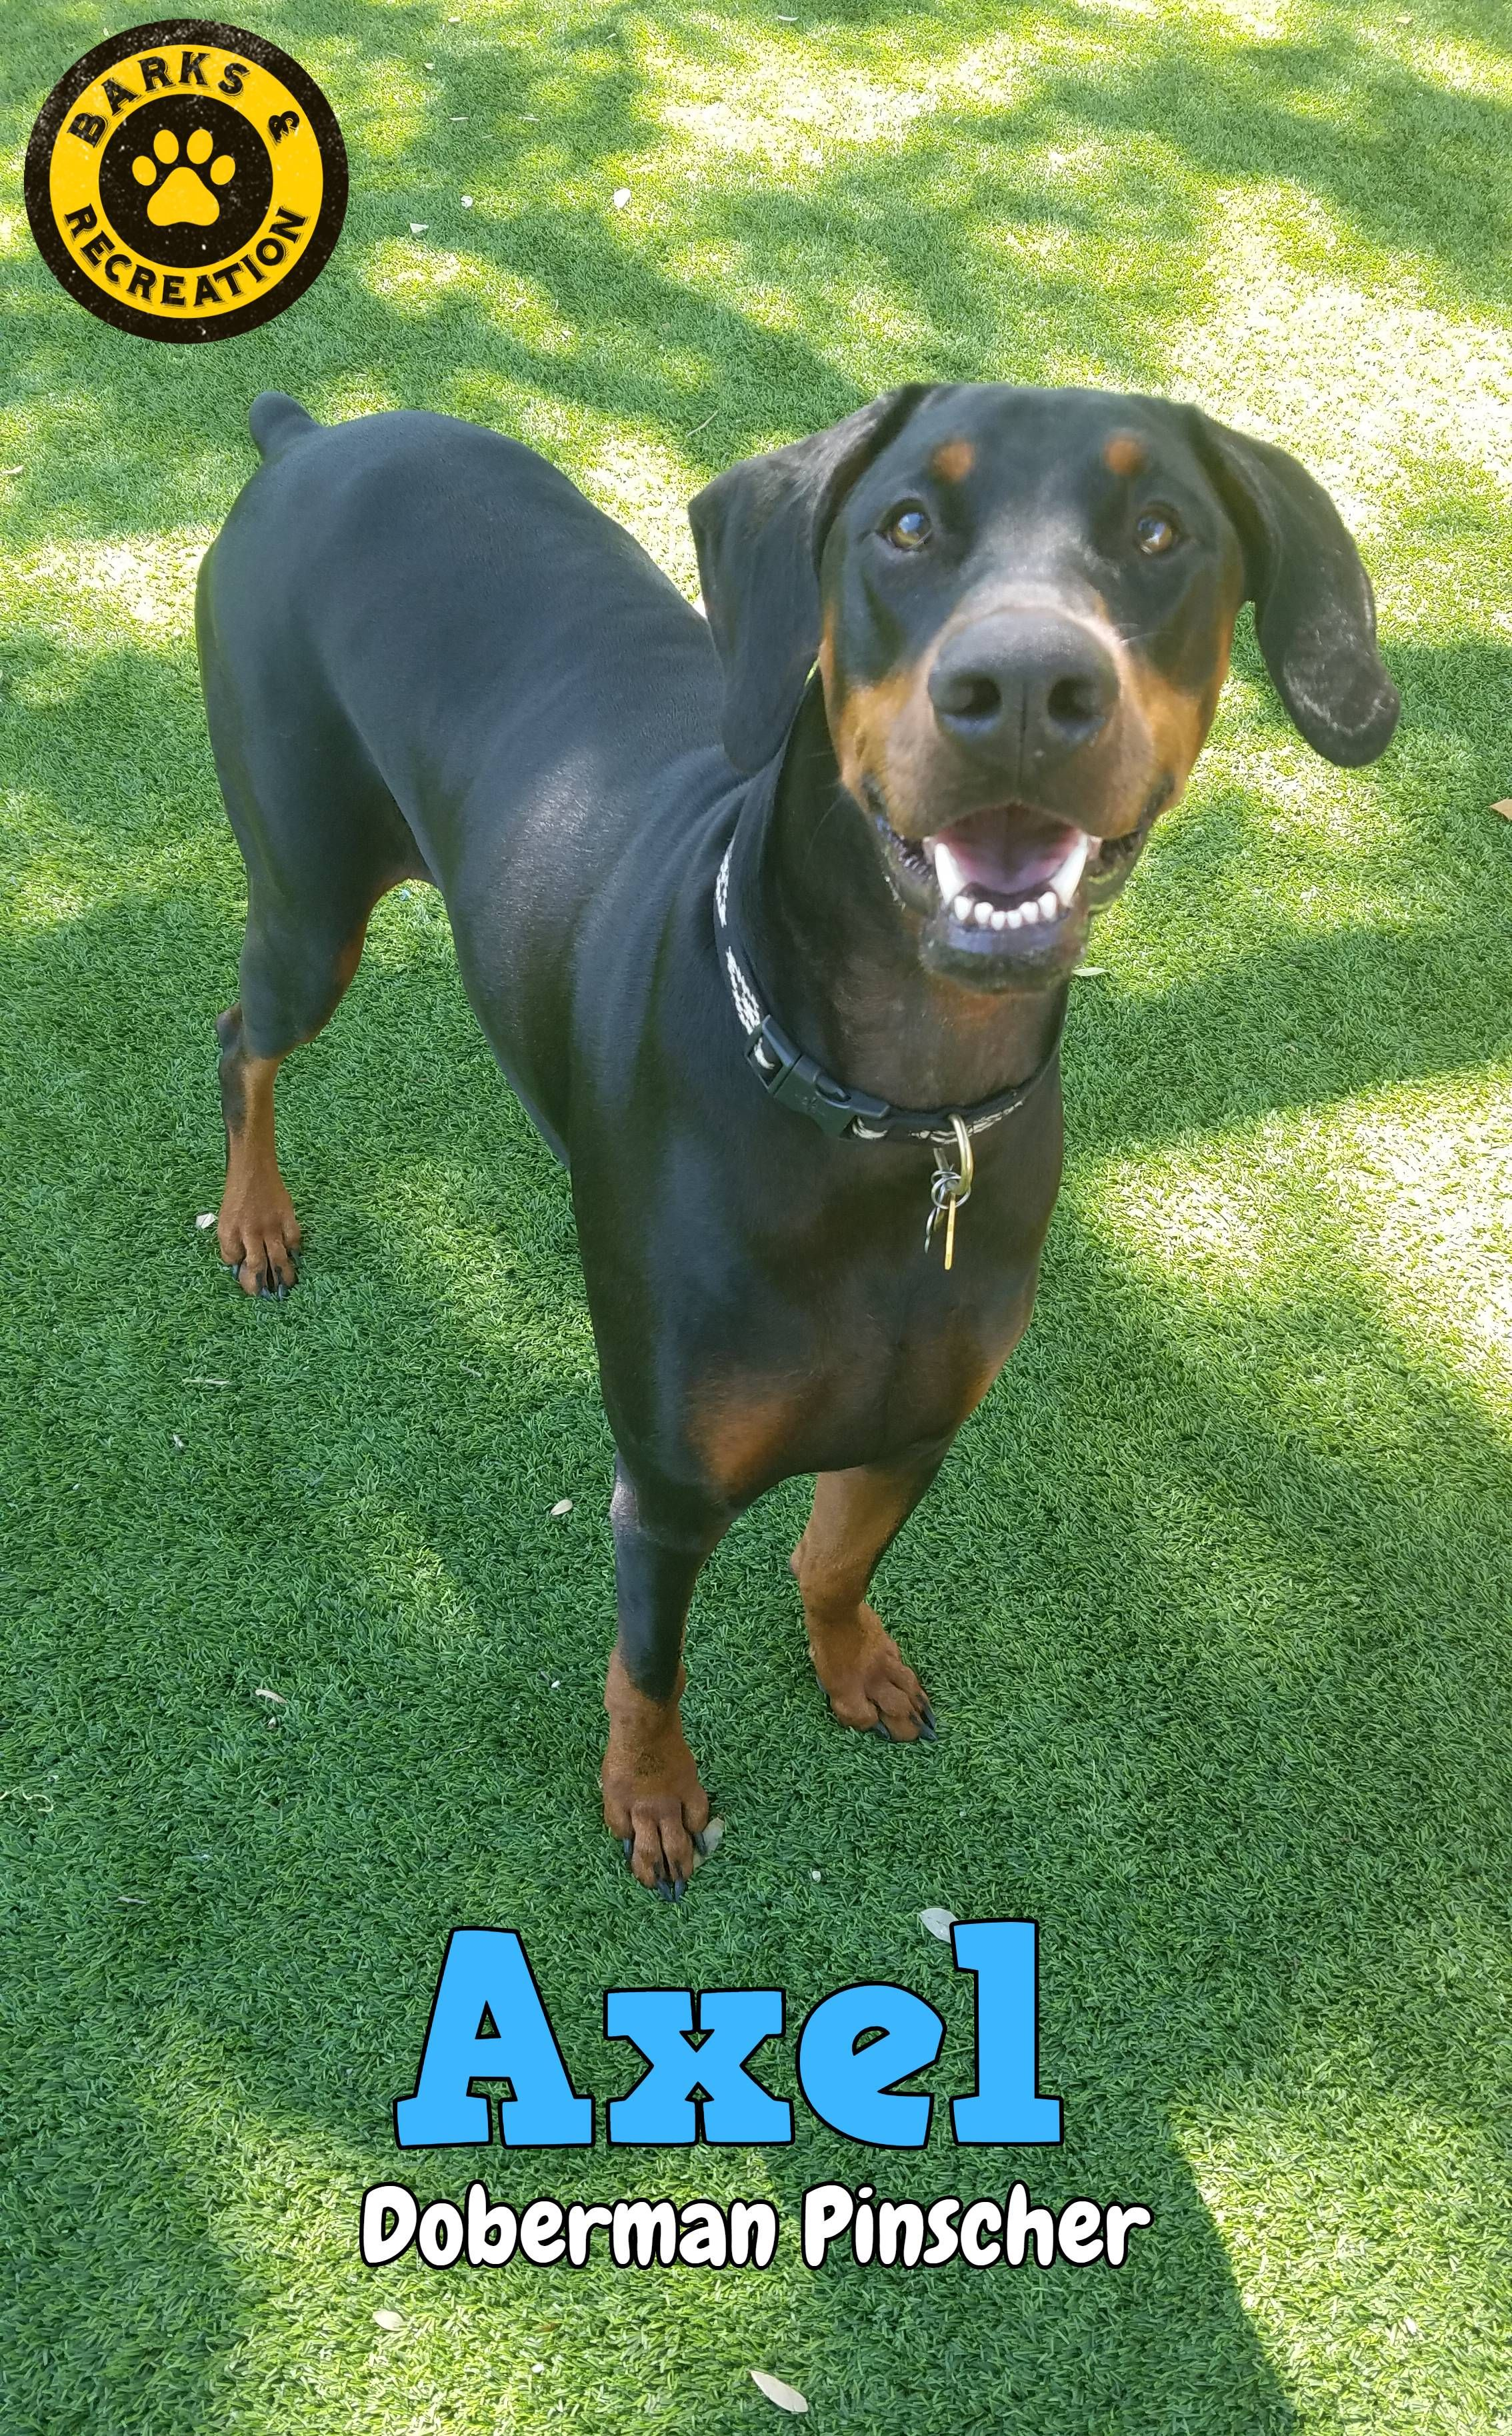 Axel A Doberman Pinscher At Barks Recreation In Seminole Fl